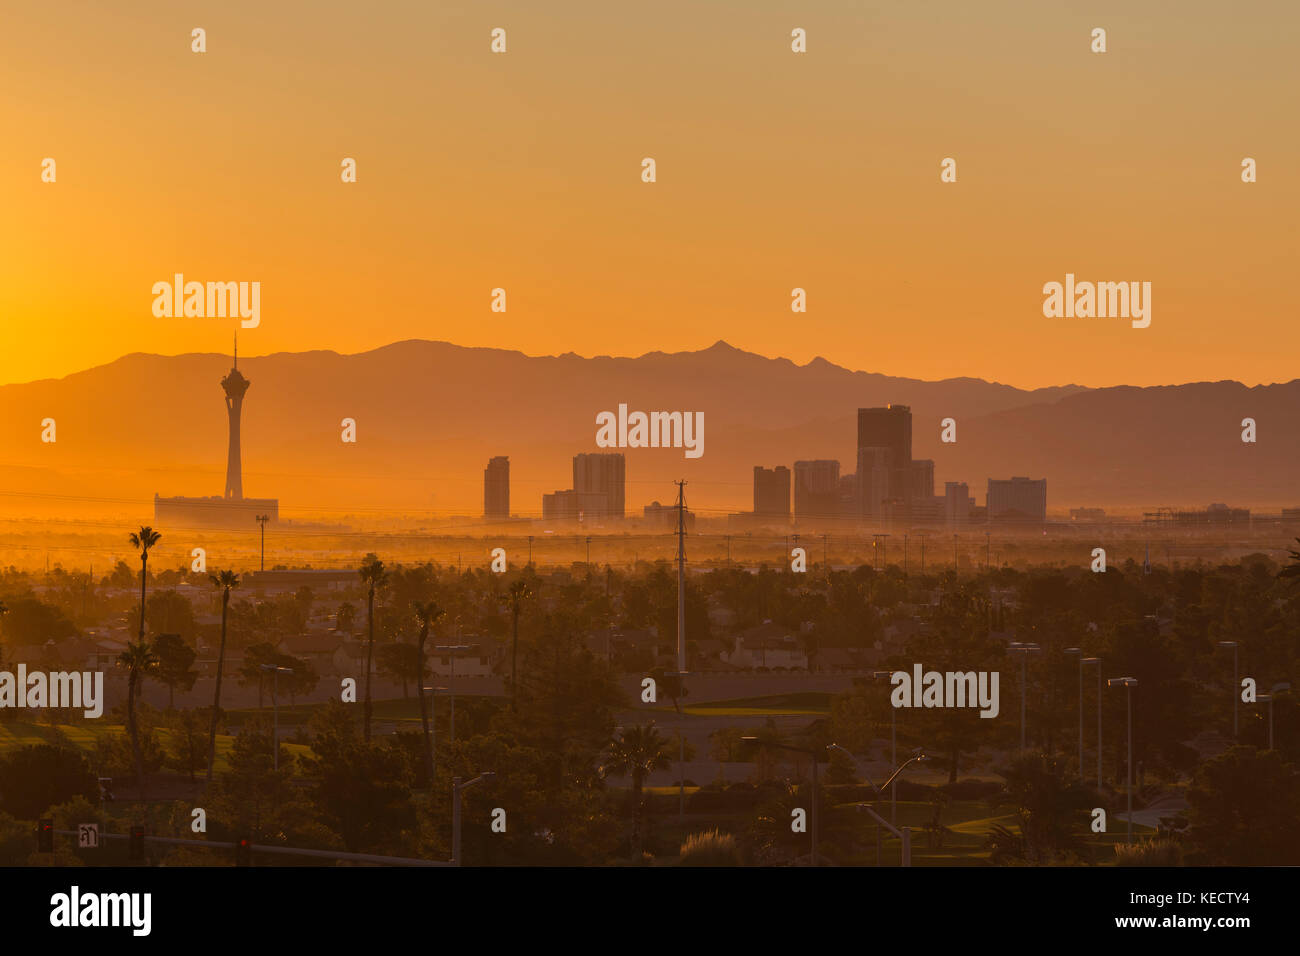 Las Vegas, Nevada, USA - October 10, 2017:  Hazy morning sunrise view of towers on the Las Vegas strip. - Stock Image